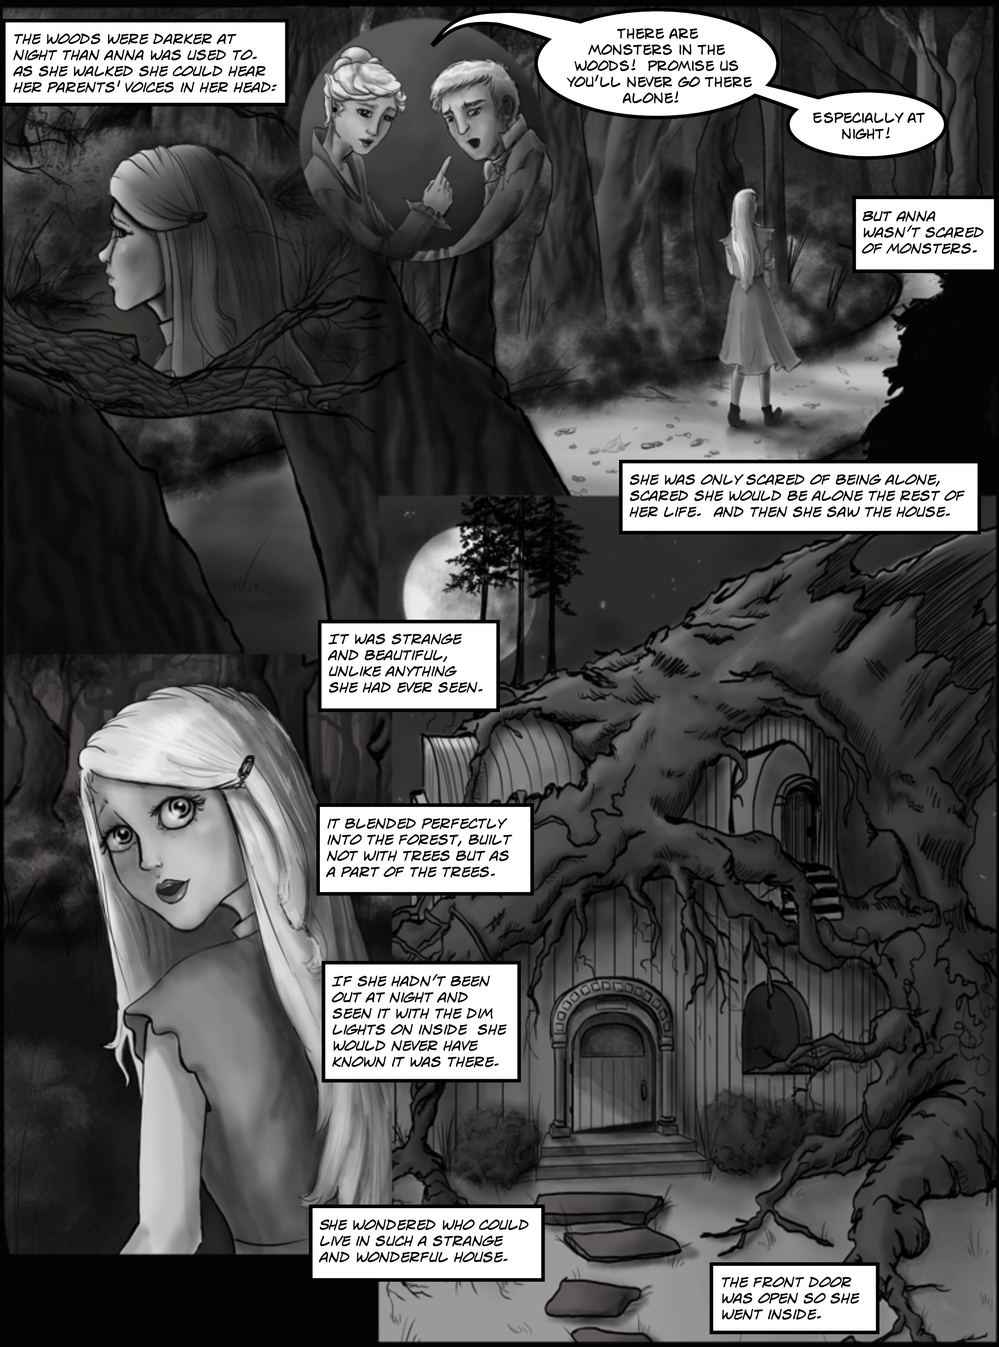 OTHER PEOPLE'S HOUSES page 3 -- in The Book of Lies